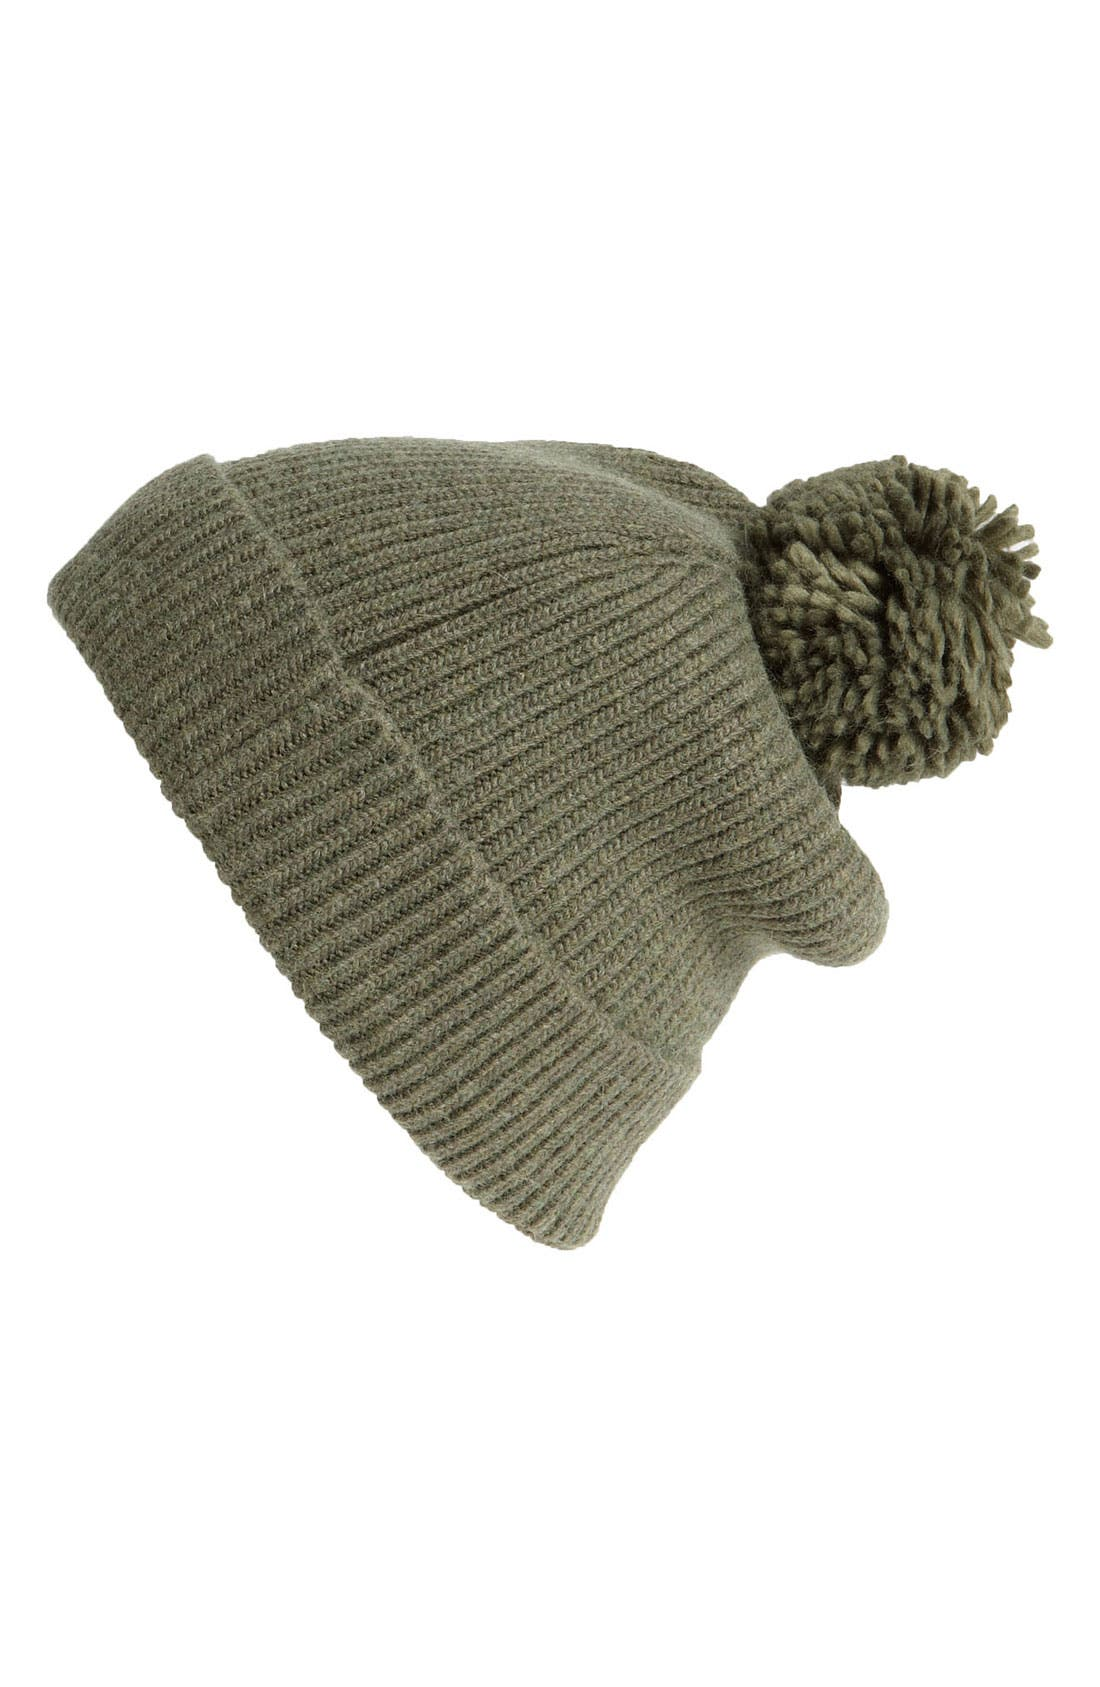 Alternate Image 1 Selected - True Religion Brand Jeans 'Watchman' Beanie